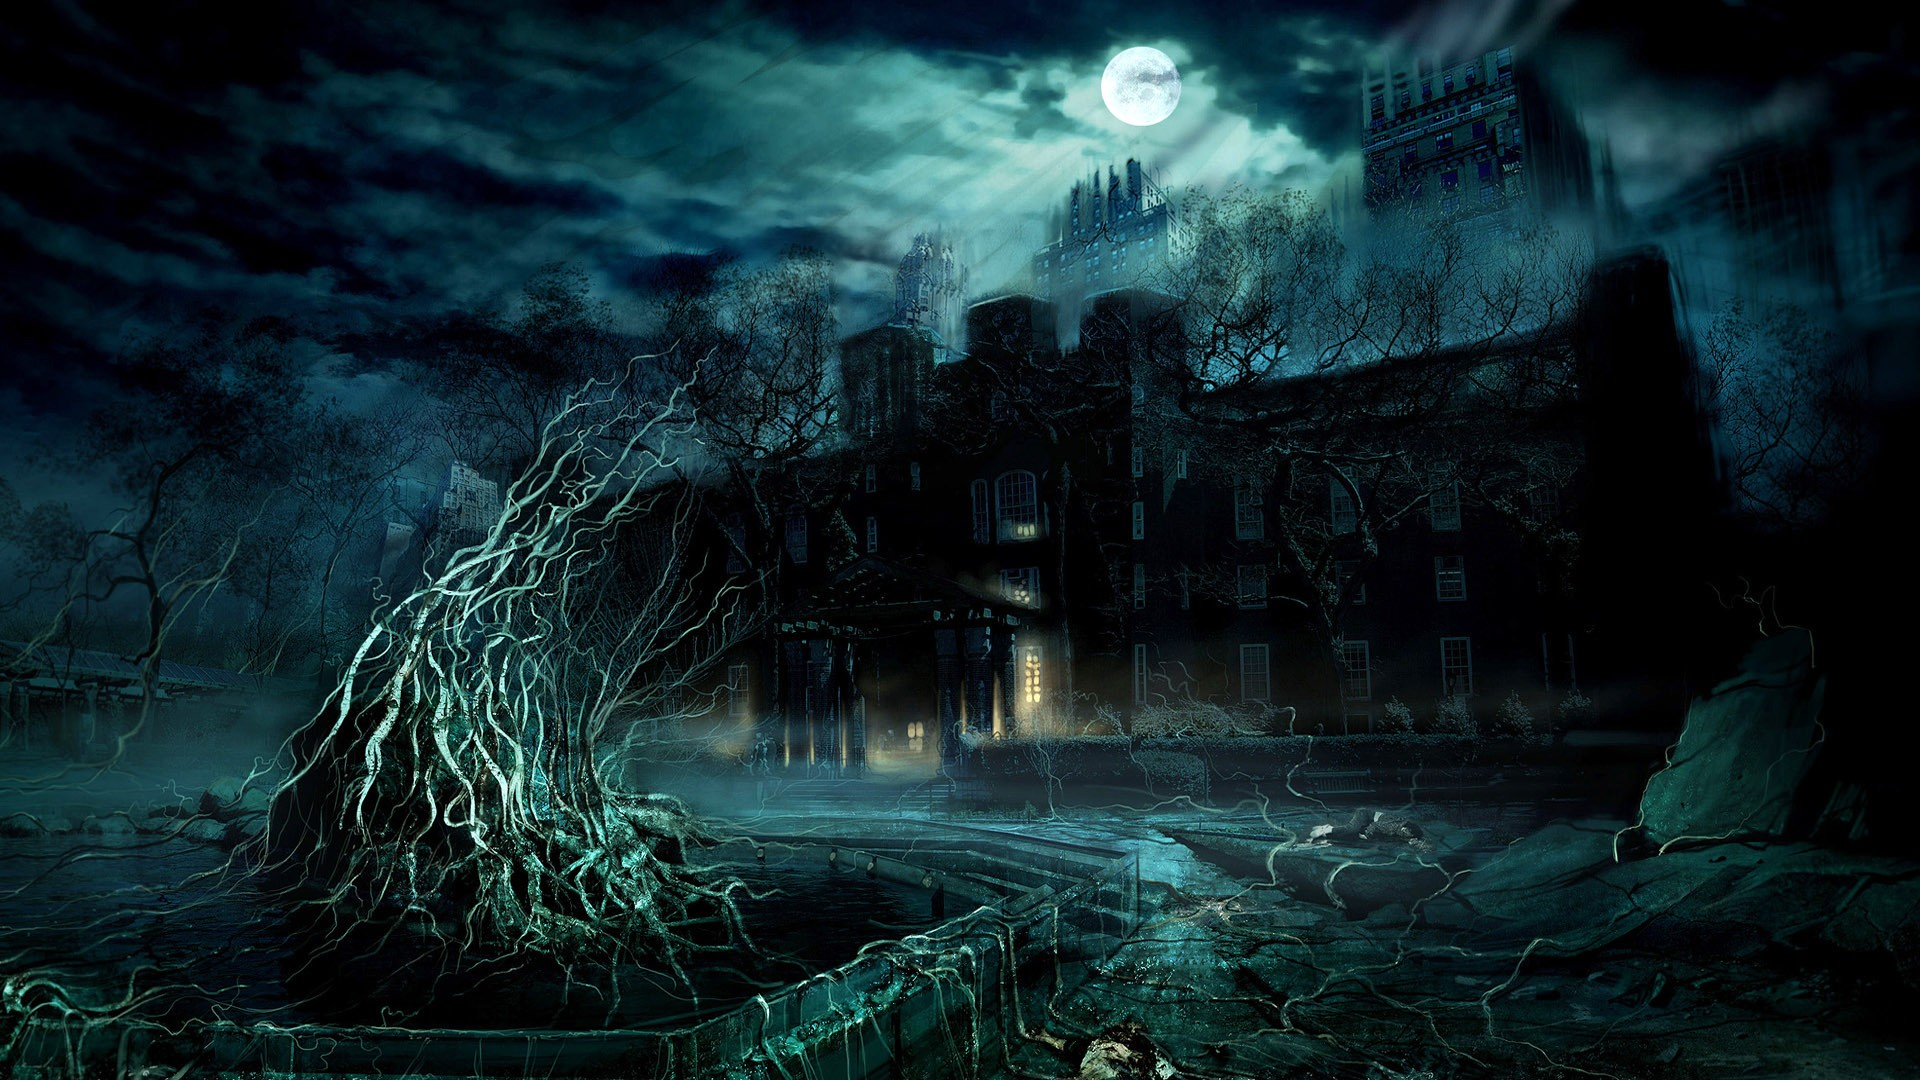 Collection of Cool Goth Backgrounds on HDWallpapers